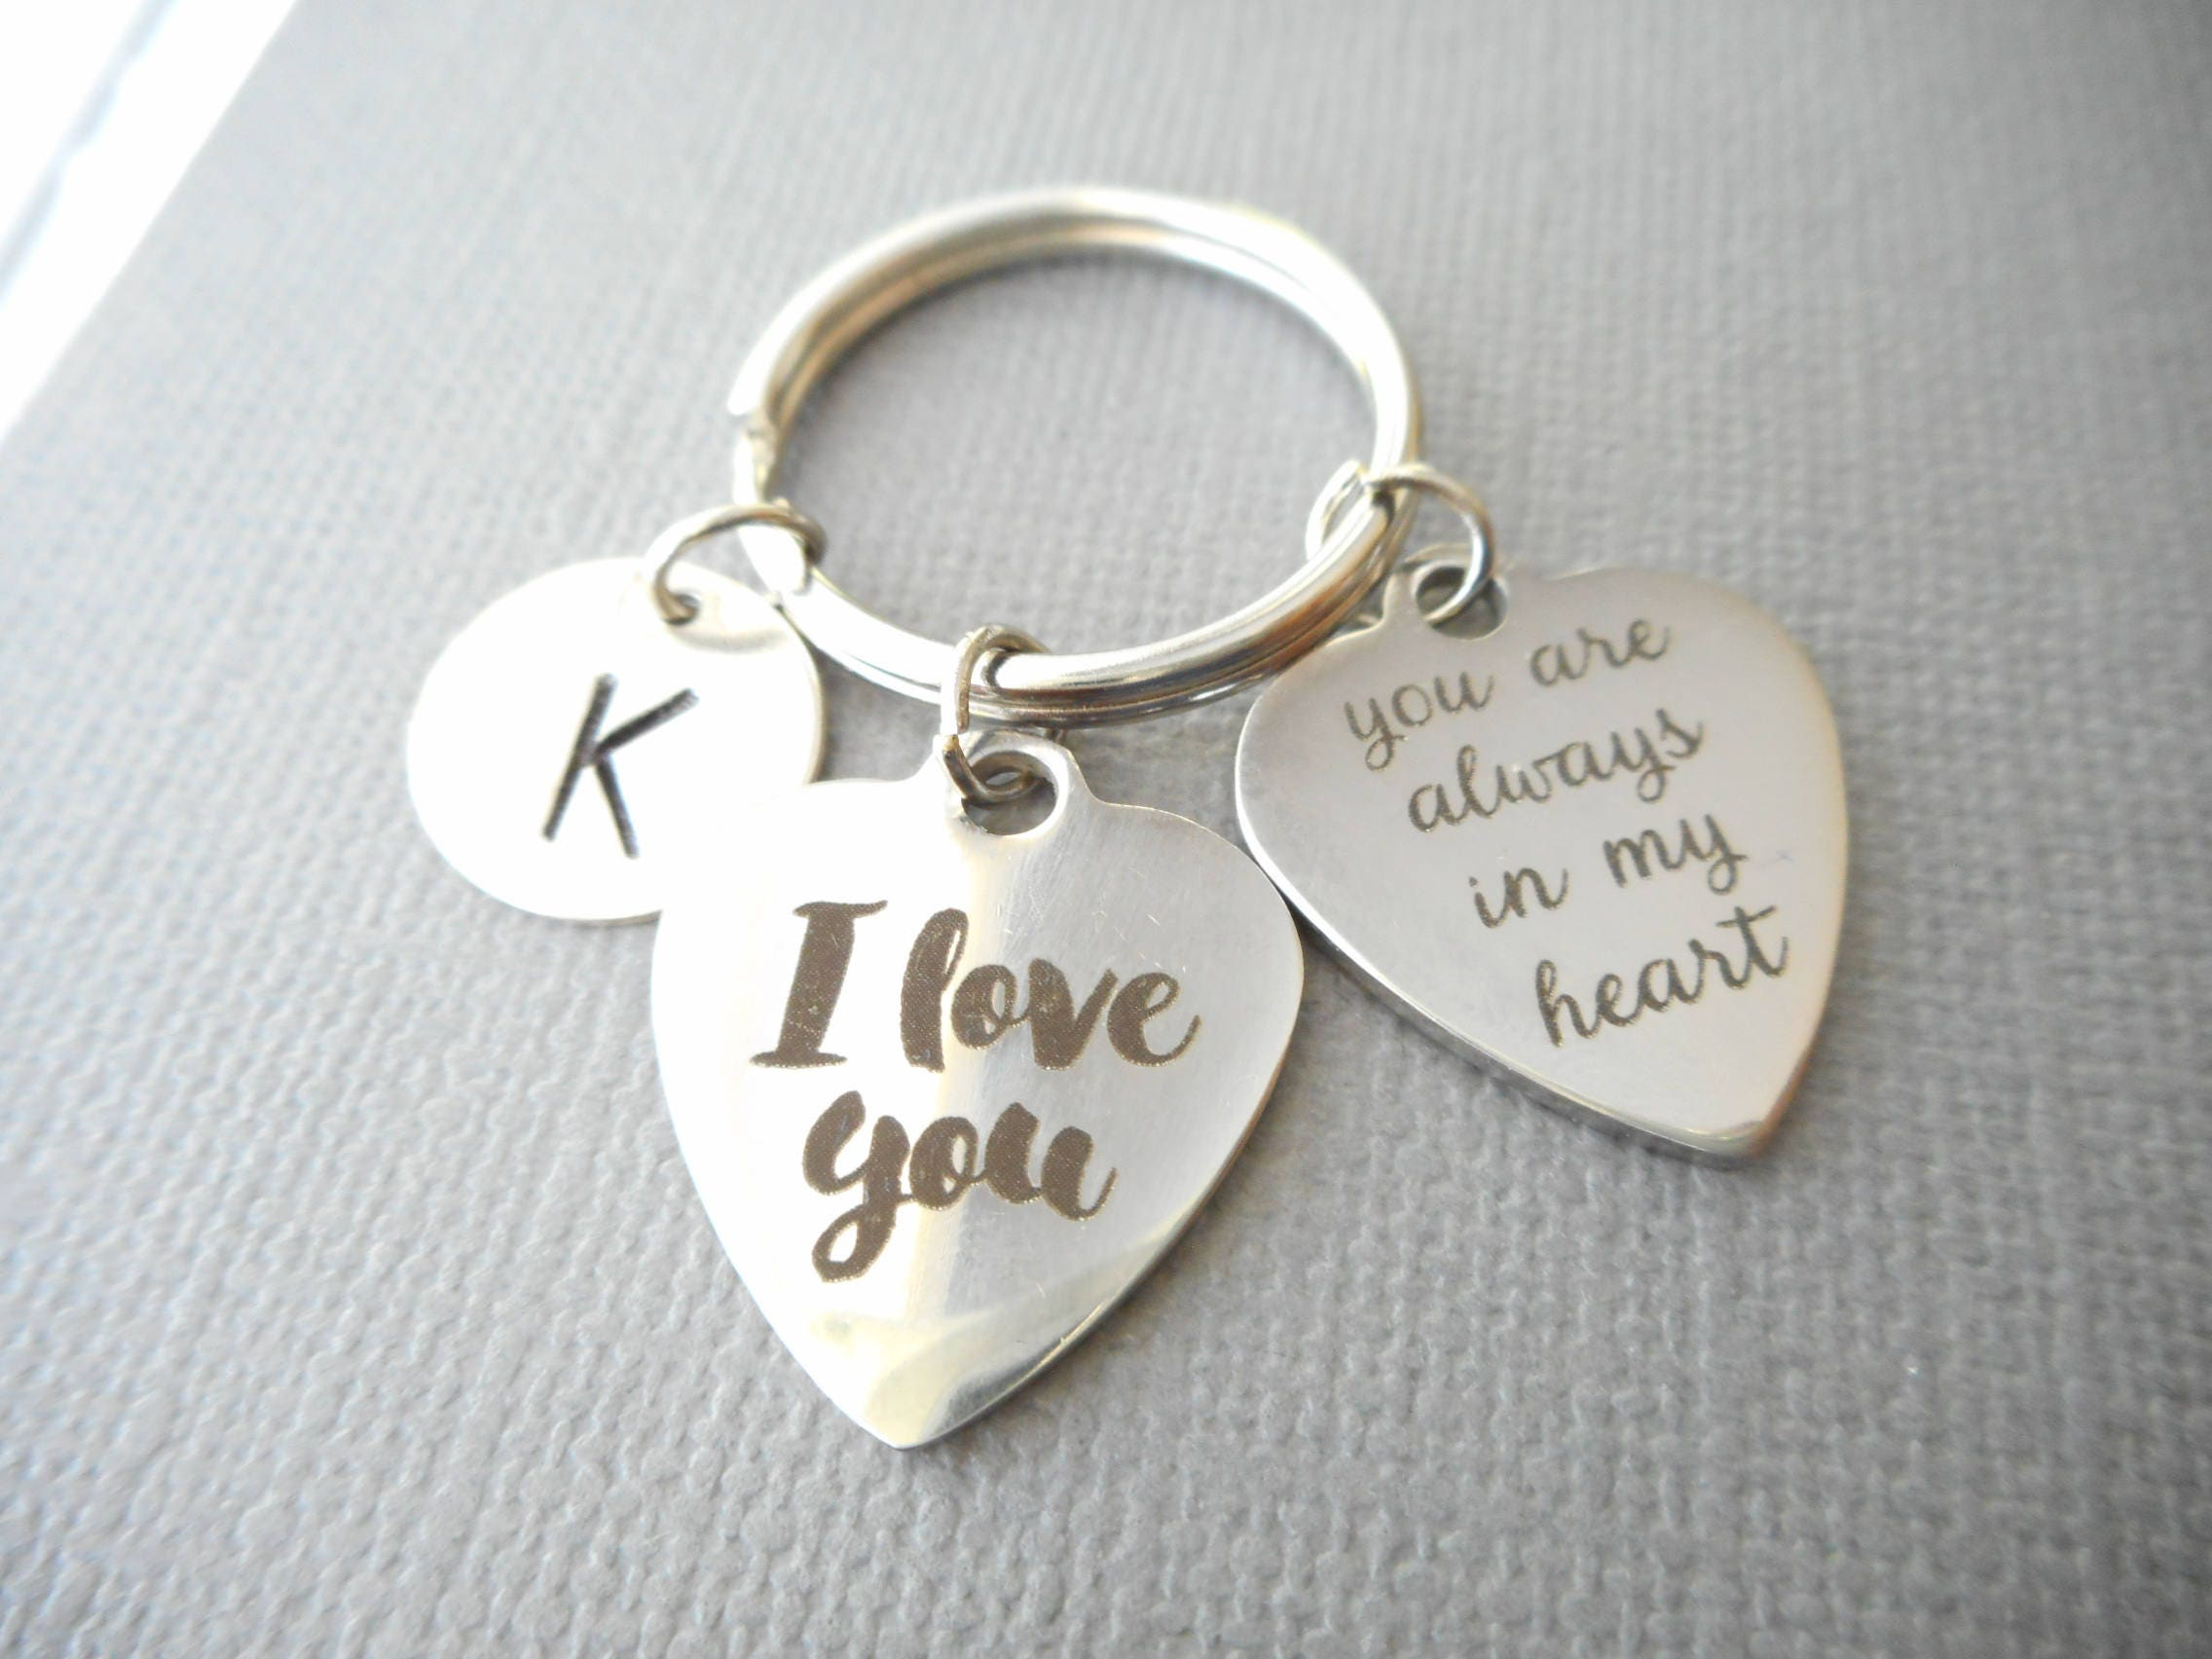 I Love You Are Always In My Heart Initial Keychain Gift For